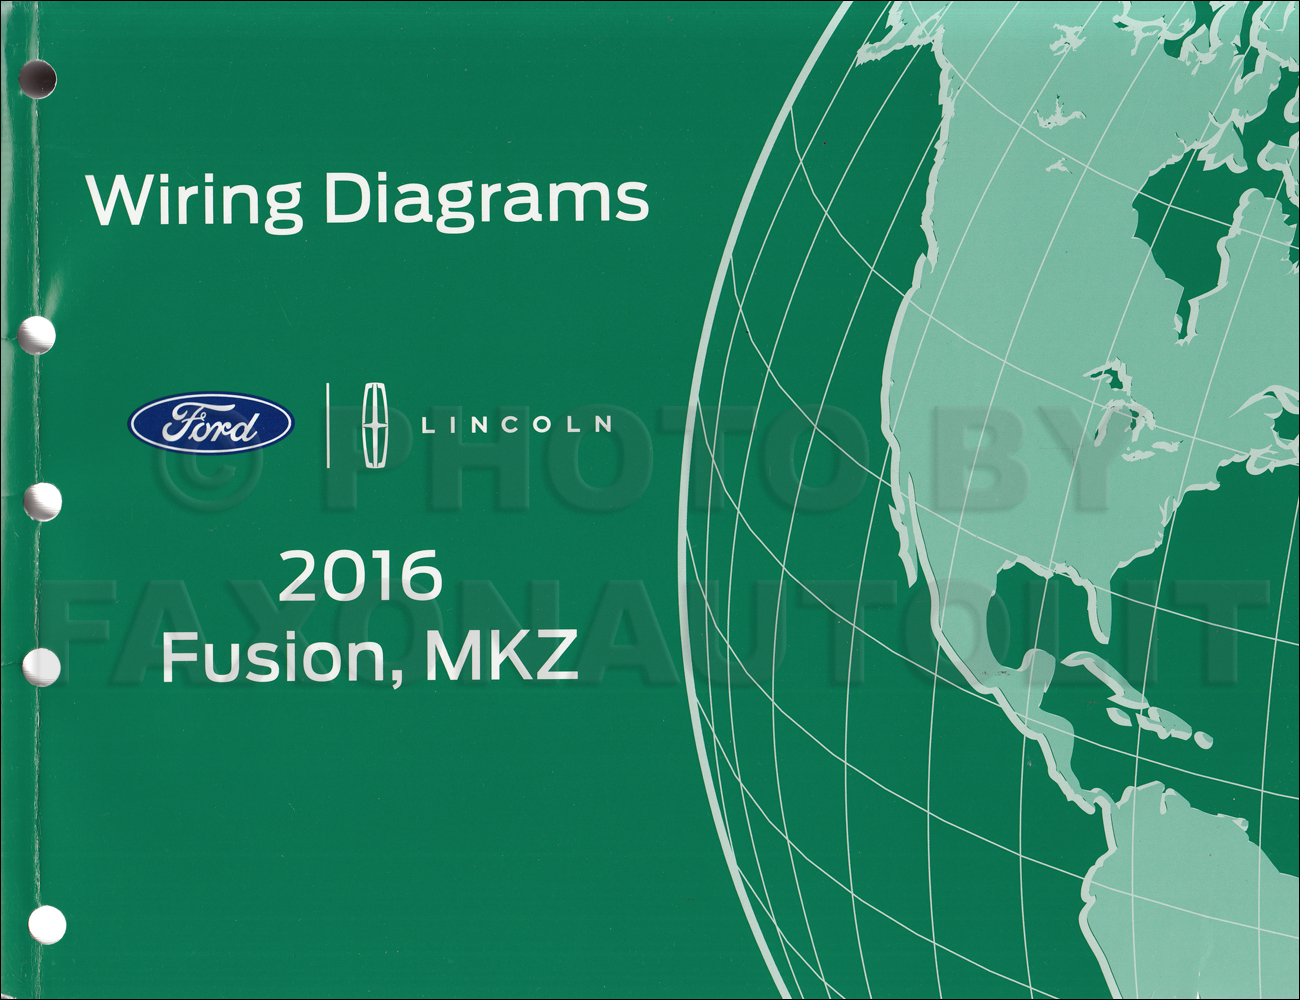 [DIAGRAM_38DE]  3EE 2010 Ford Fusion Wiring Schematic | Wiring Library | 2106 Ford Headlight Wiring Diagram |  | Wiring Library